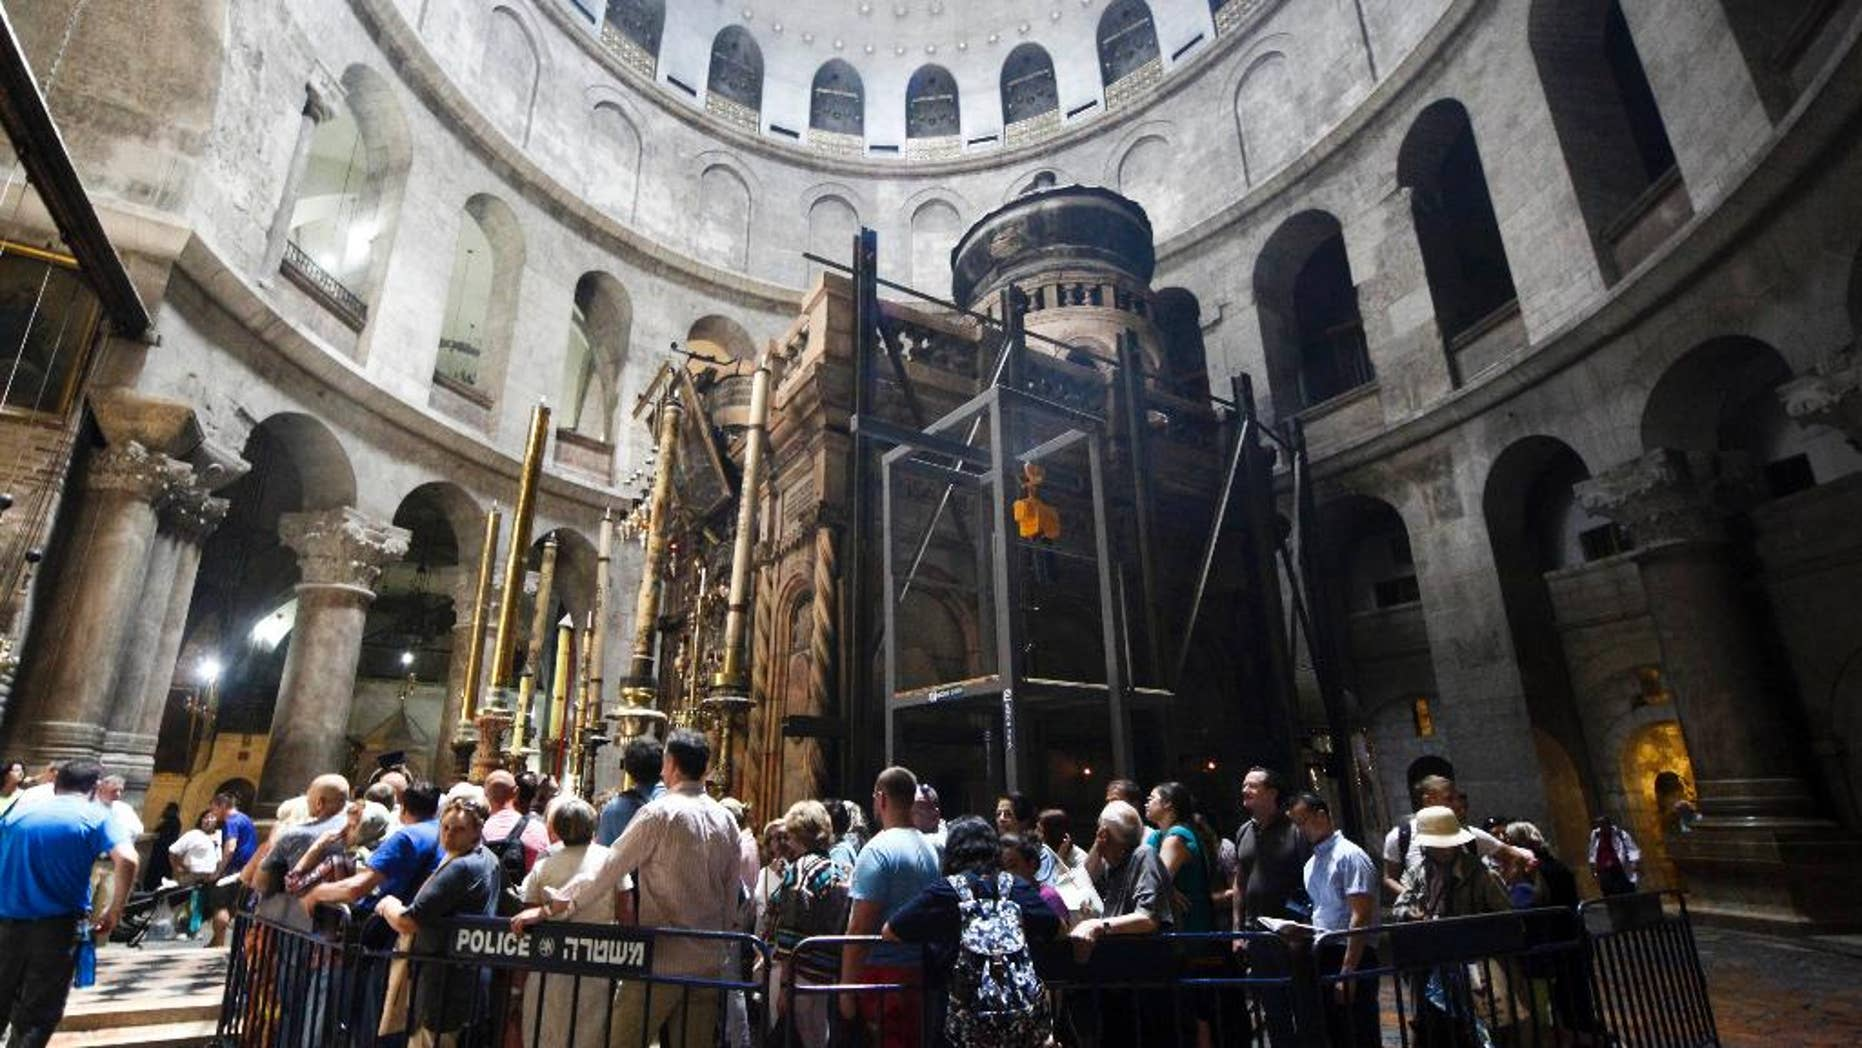 Christian pilgrims wait in line to visit the tomb of Jesus Christ in the Church of Holy Sepulcher in Jerusalem Friday, May 20, 2016. Christian officials have launched historic restoration work at the Tomb of Jesus inside the Church of Holy Sepulcher, site where tradition holds Jesus was crucified, buried and resurrected. The works are the first in almost two centuries that will focus on repairing, reinforcing and conserving the structure. (AP Photo/Mahmoud Illean)